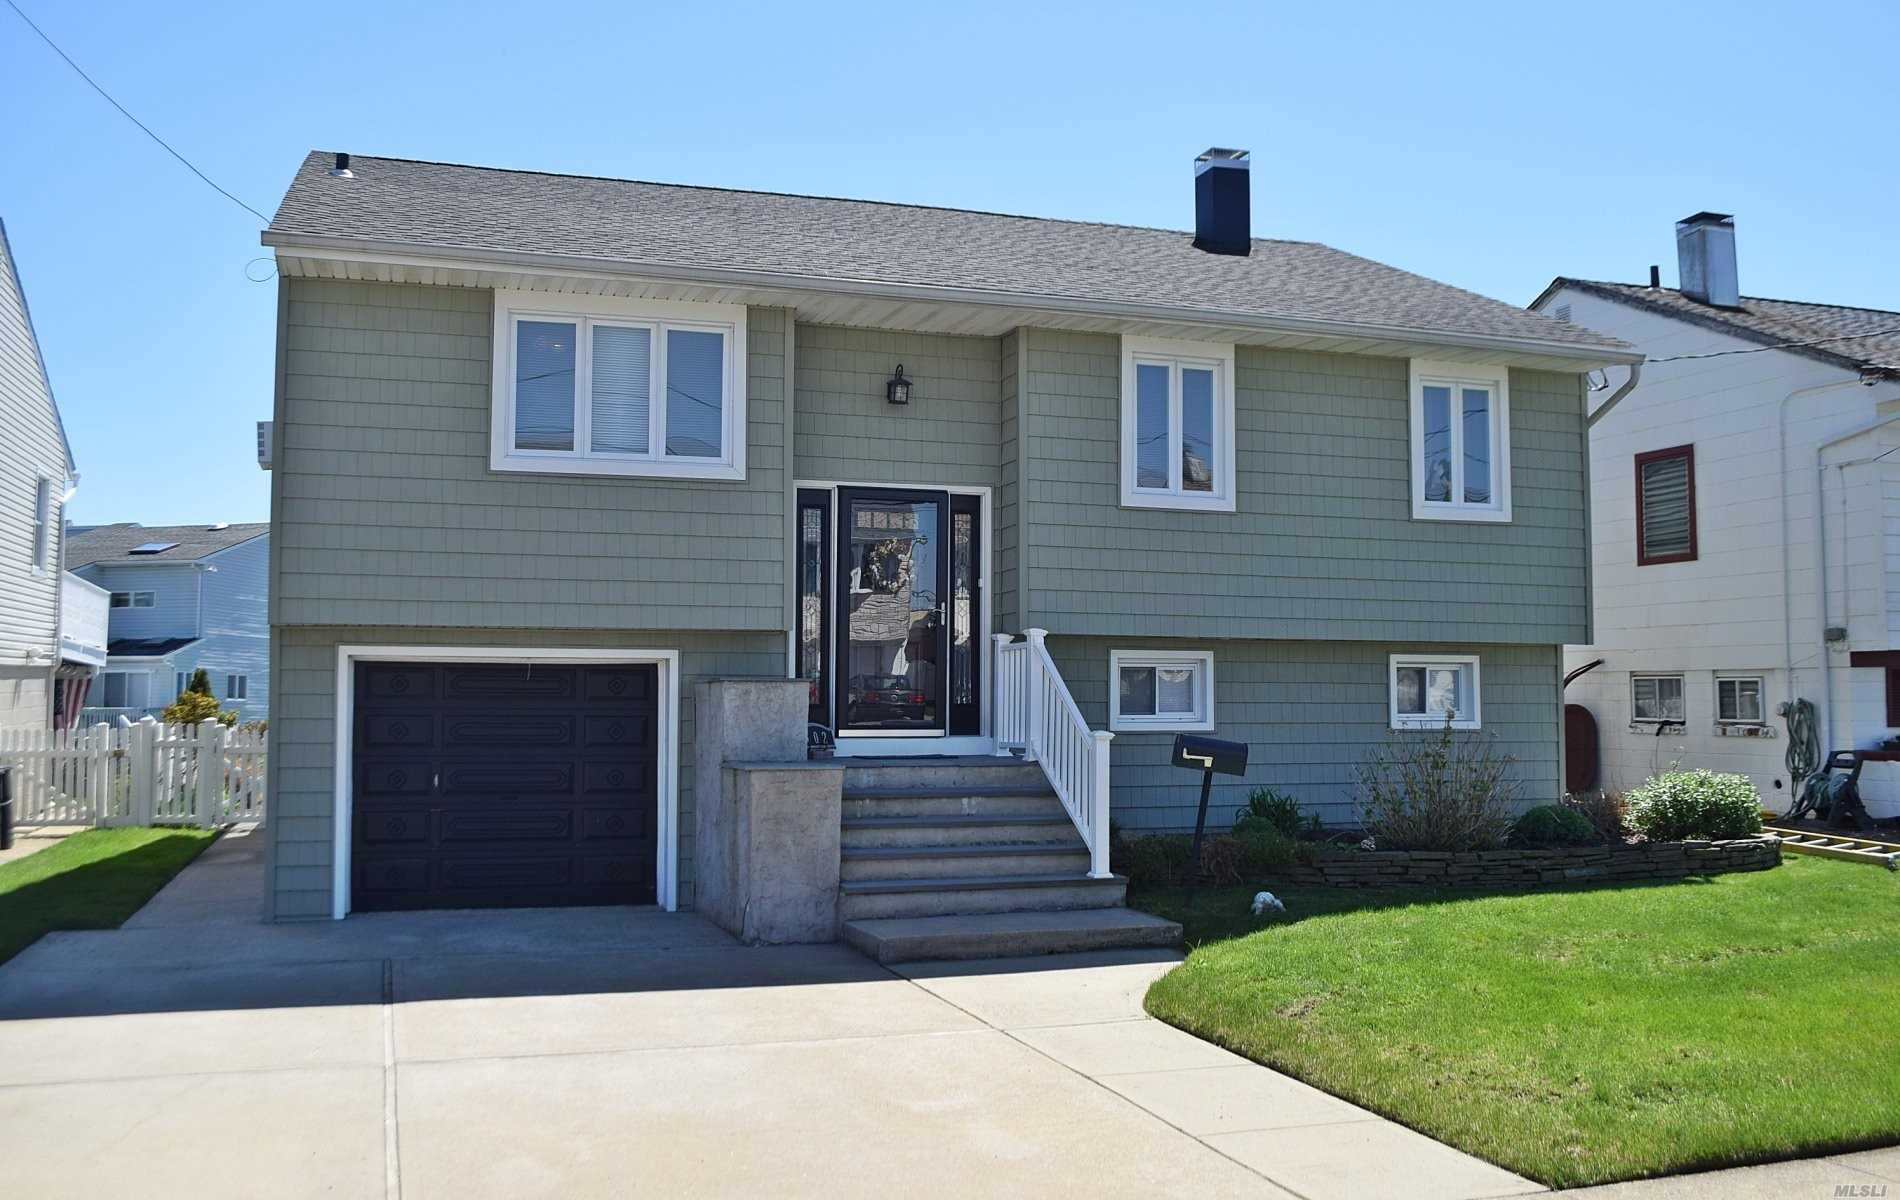 Spacious Waterfront Hi-Ranch with great views of the open Bay, wide deep water, can take large Boat. 4 B/R, 2 baths many updates, Gas burner, Hot water heater, Roof, Windows, new doors to deck, New Ramp, Floating Dock, large storage Shed with electric. Sprinklers,  low Taxes, Great location, in Cow Meadow Park.